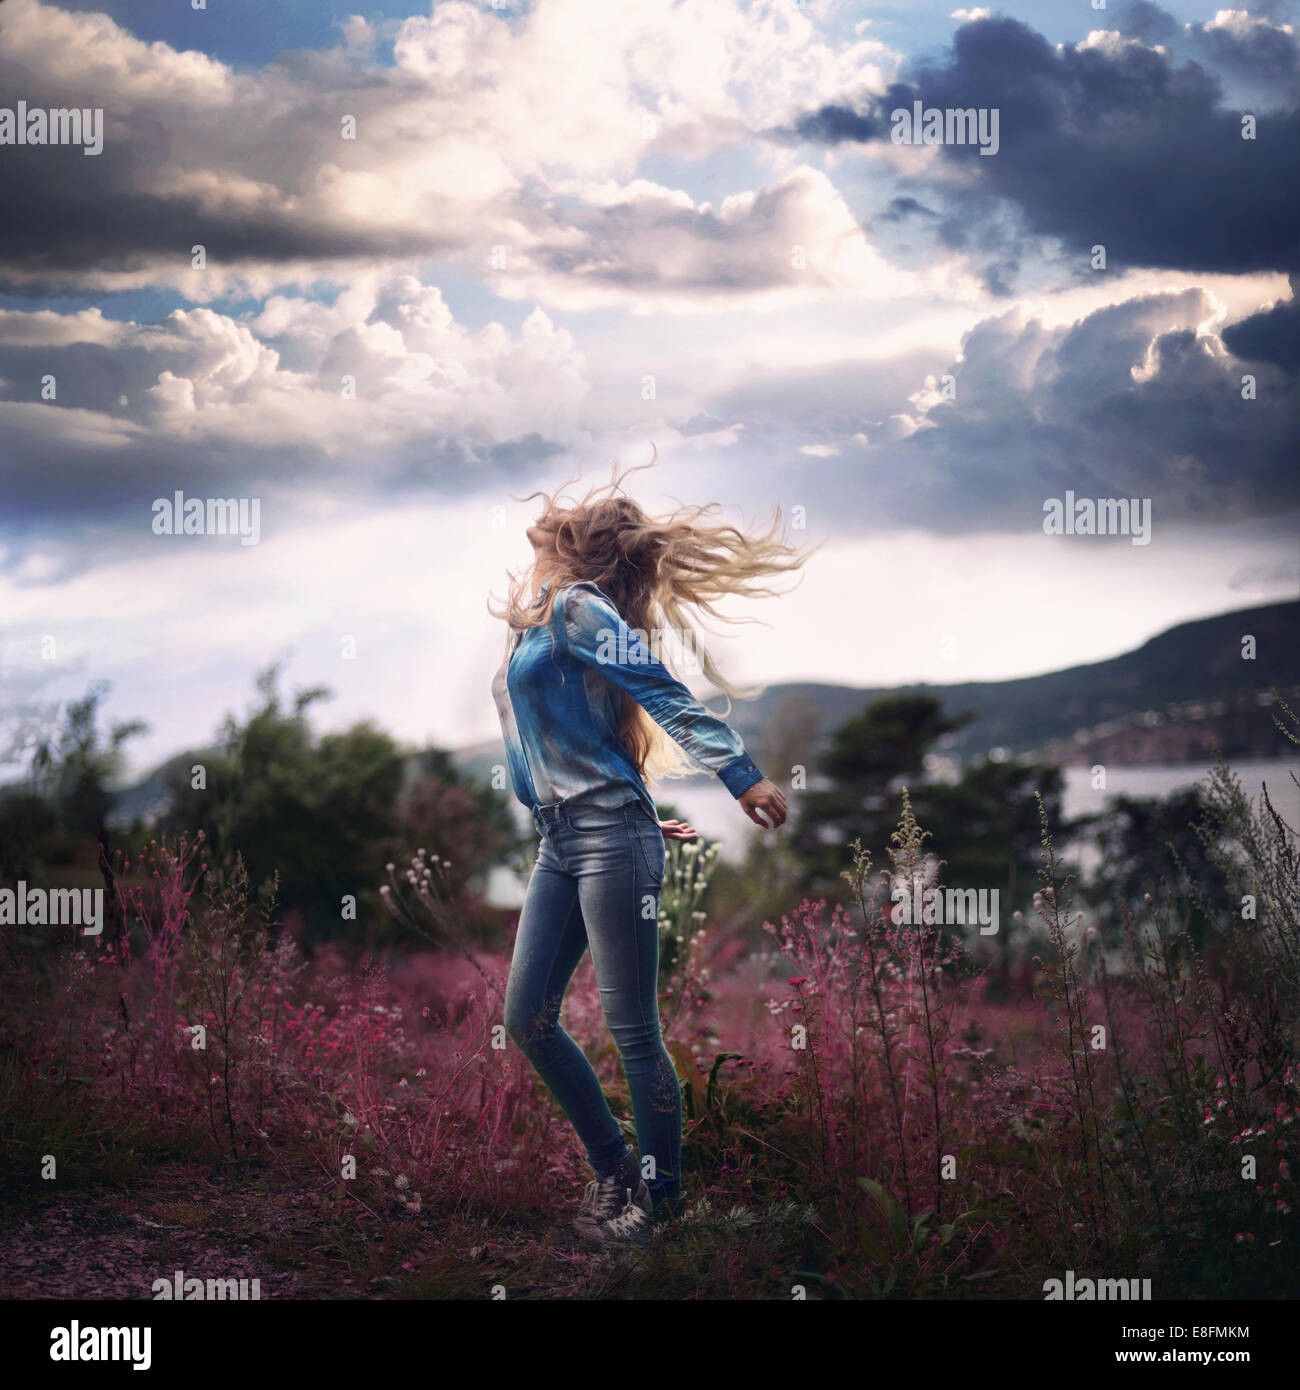 Woman Looking To The Sky - Stock Image